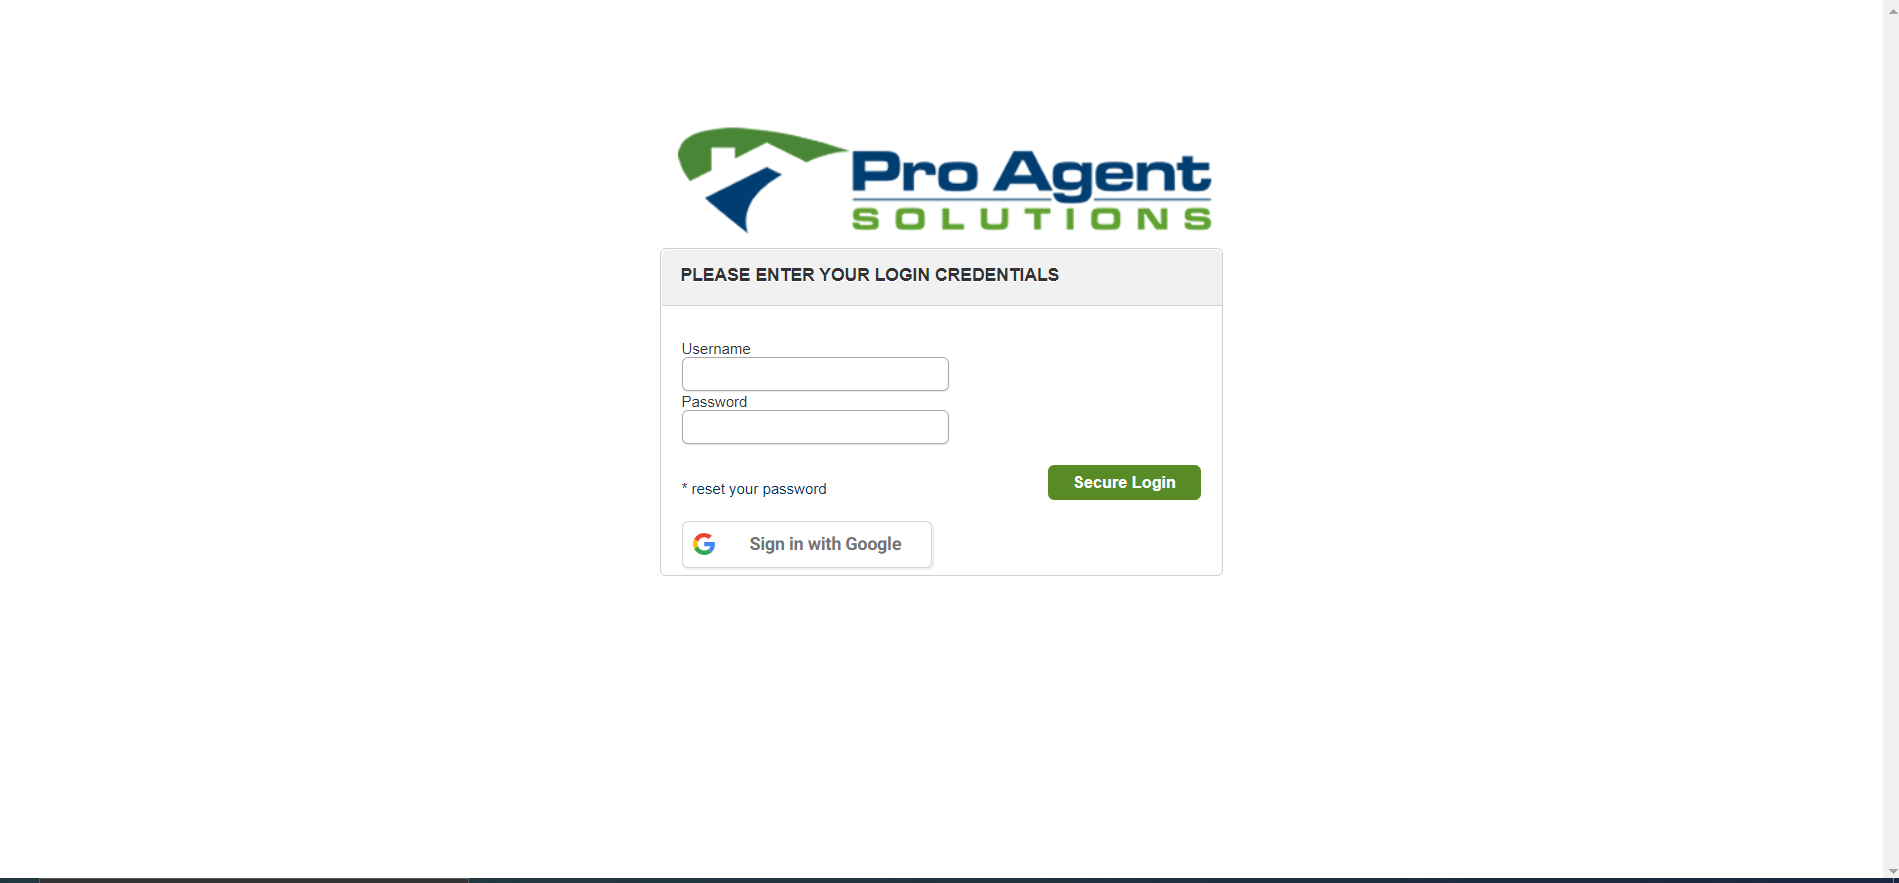 2019-11-22_23_23_27-Pro_Agent_Solutions___Secure_Login_Access.png